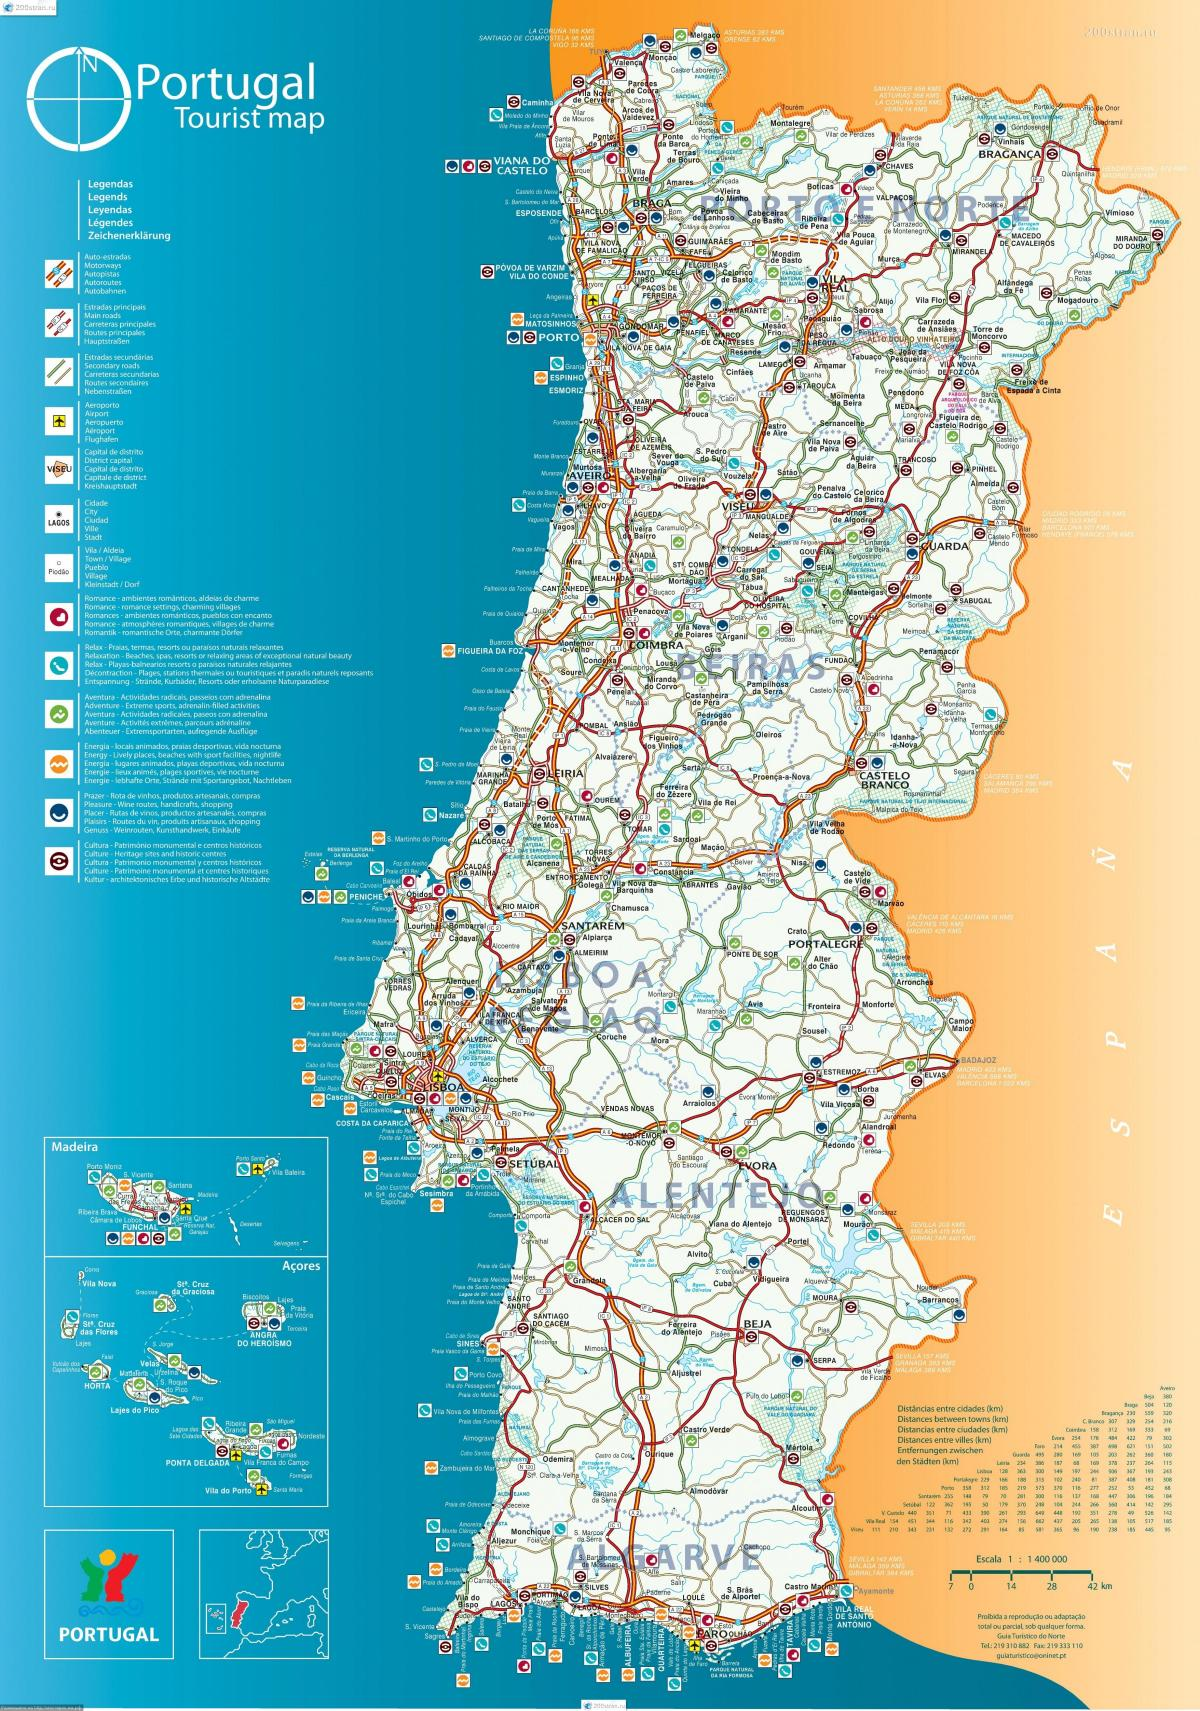 tourist map of Portugal